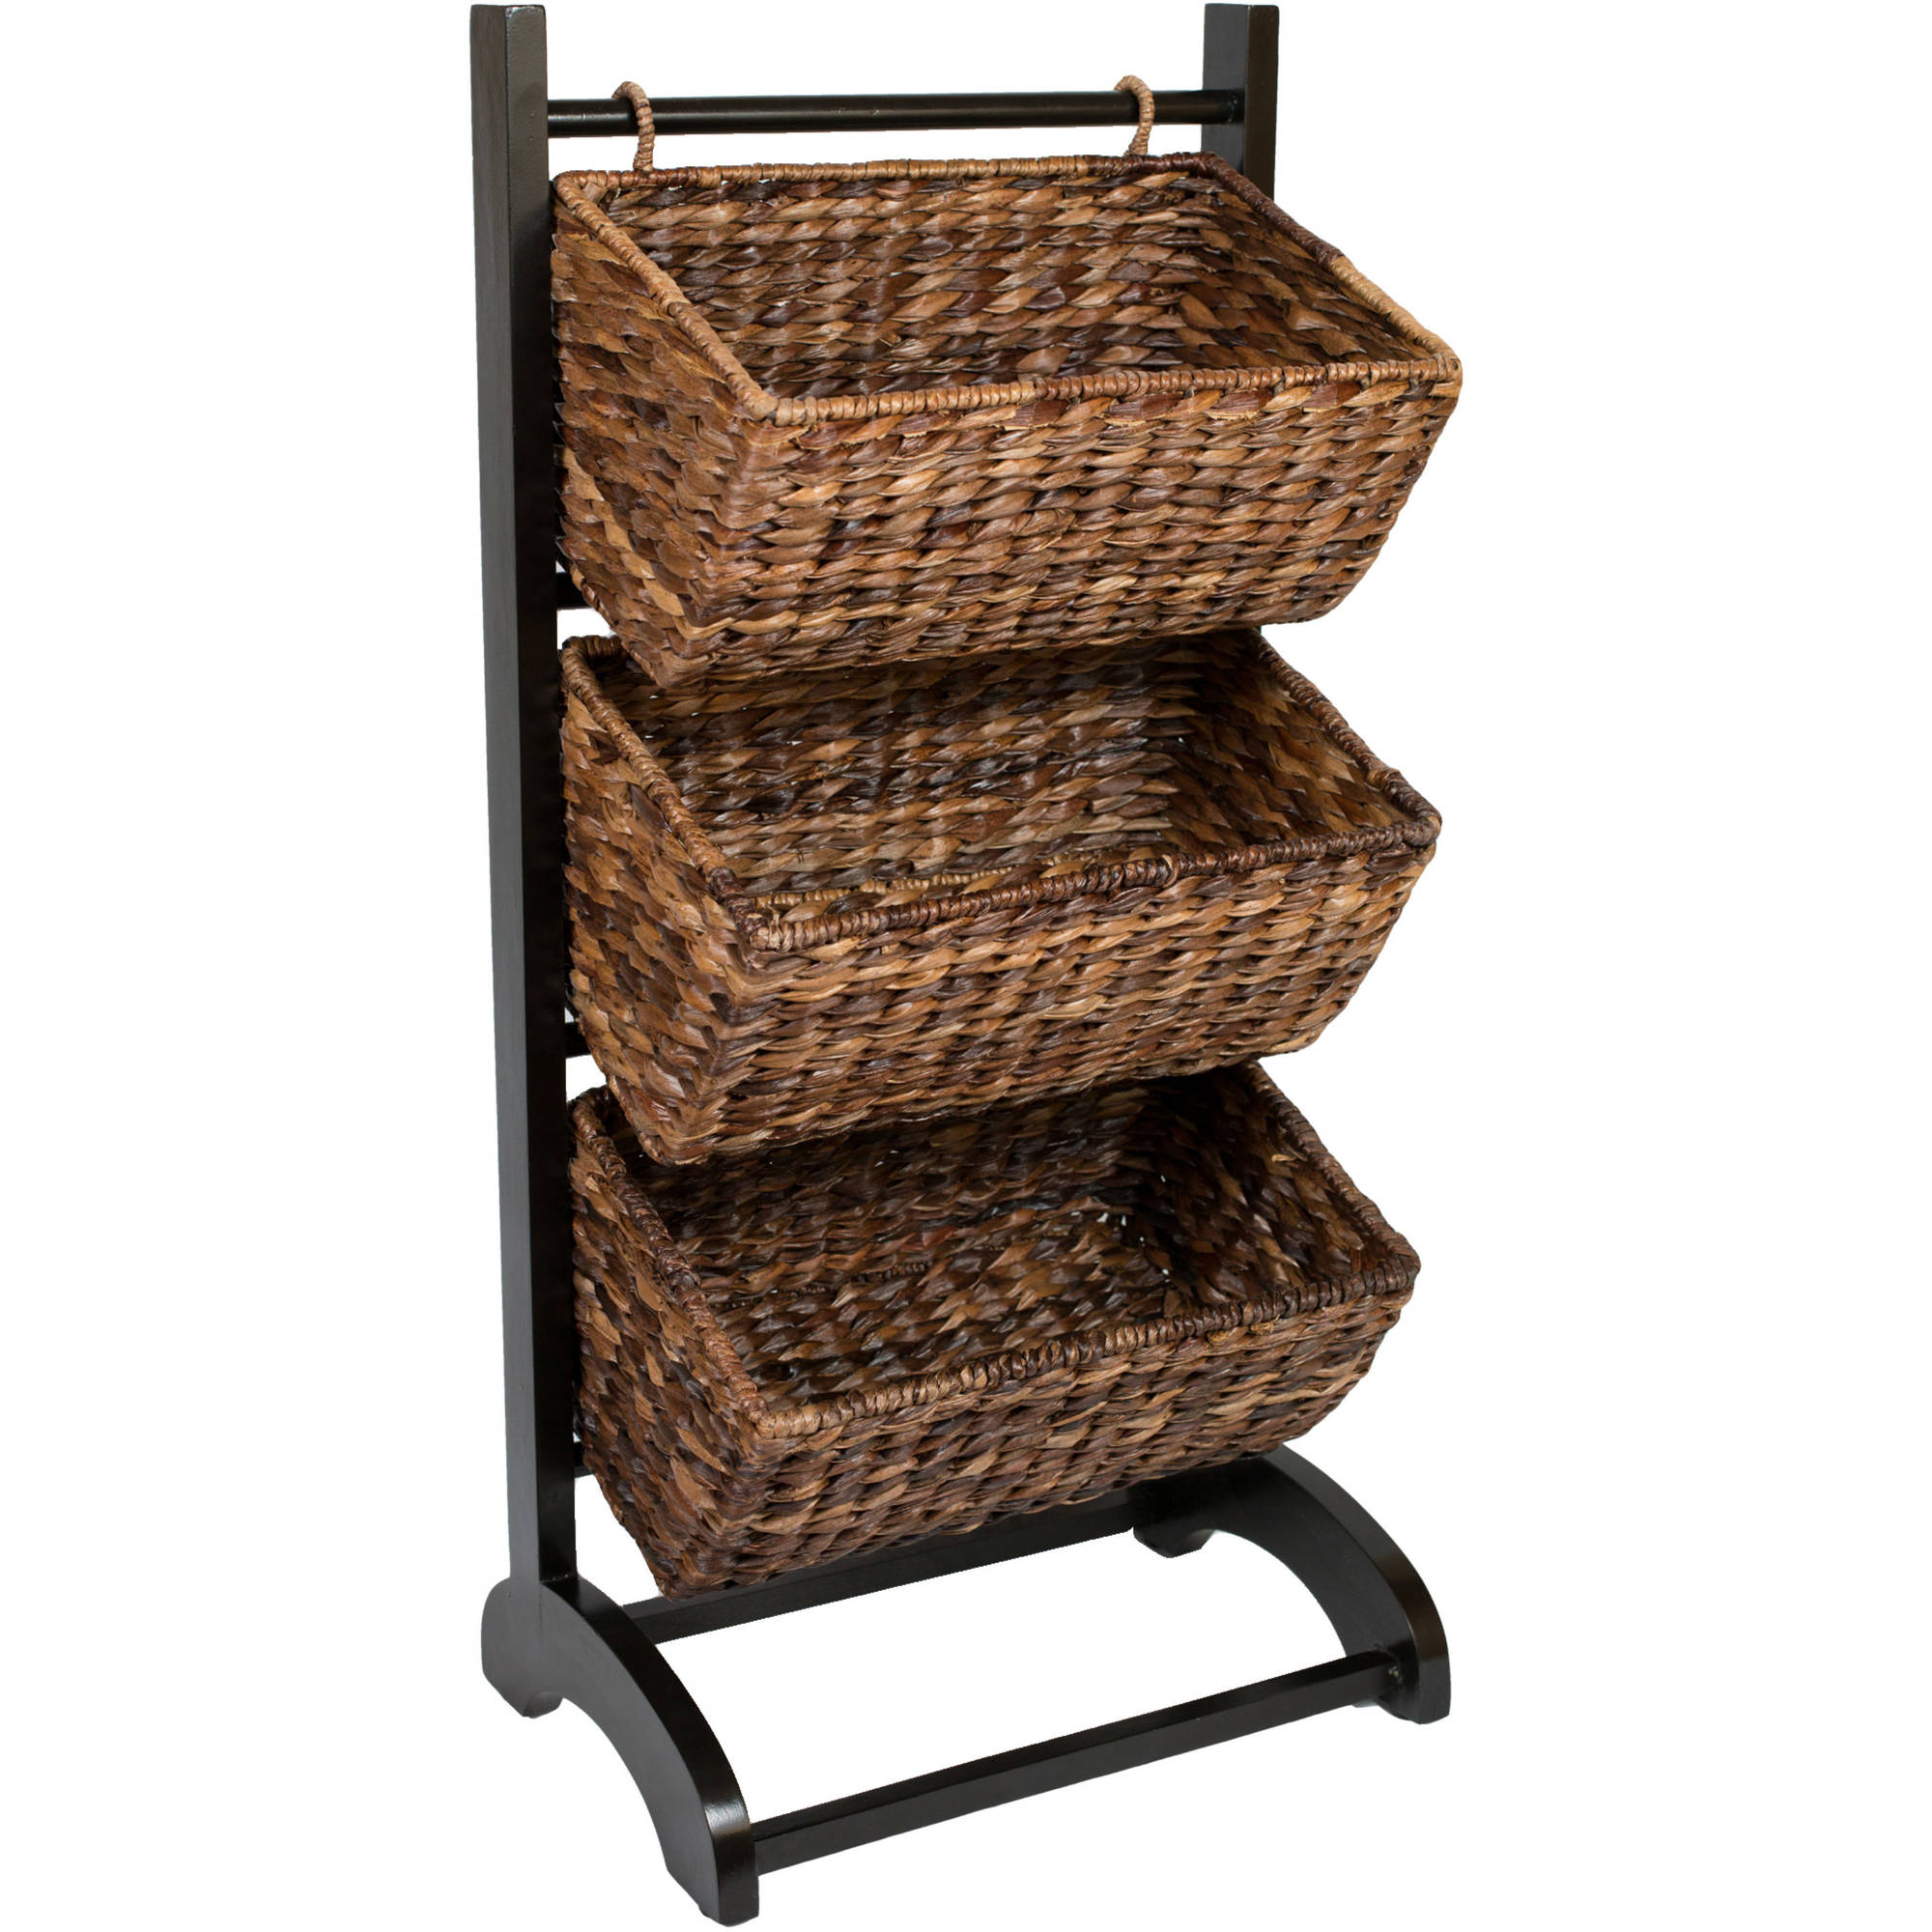 BirdRock Home Abaca 3-Tier Storage Cubby